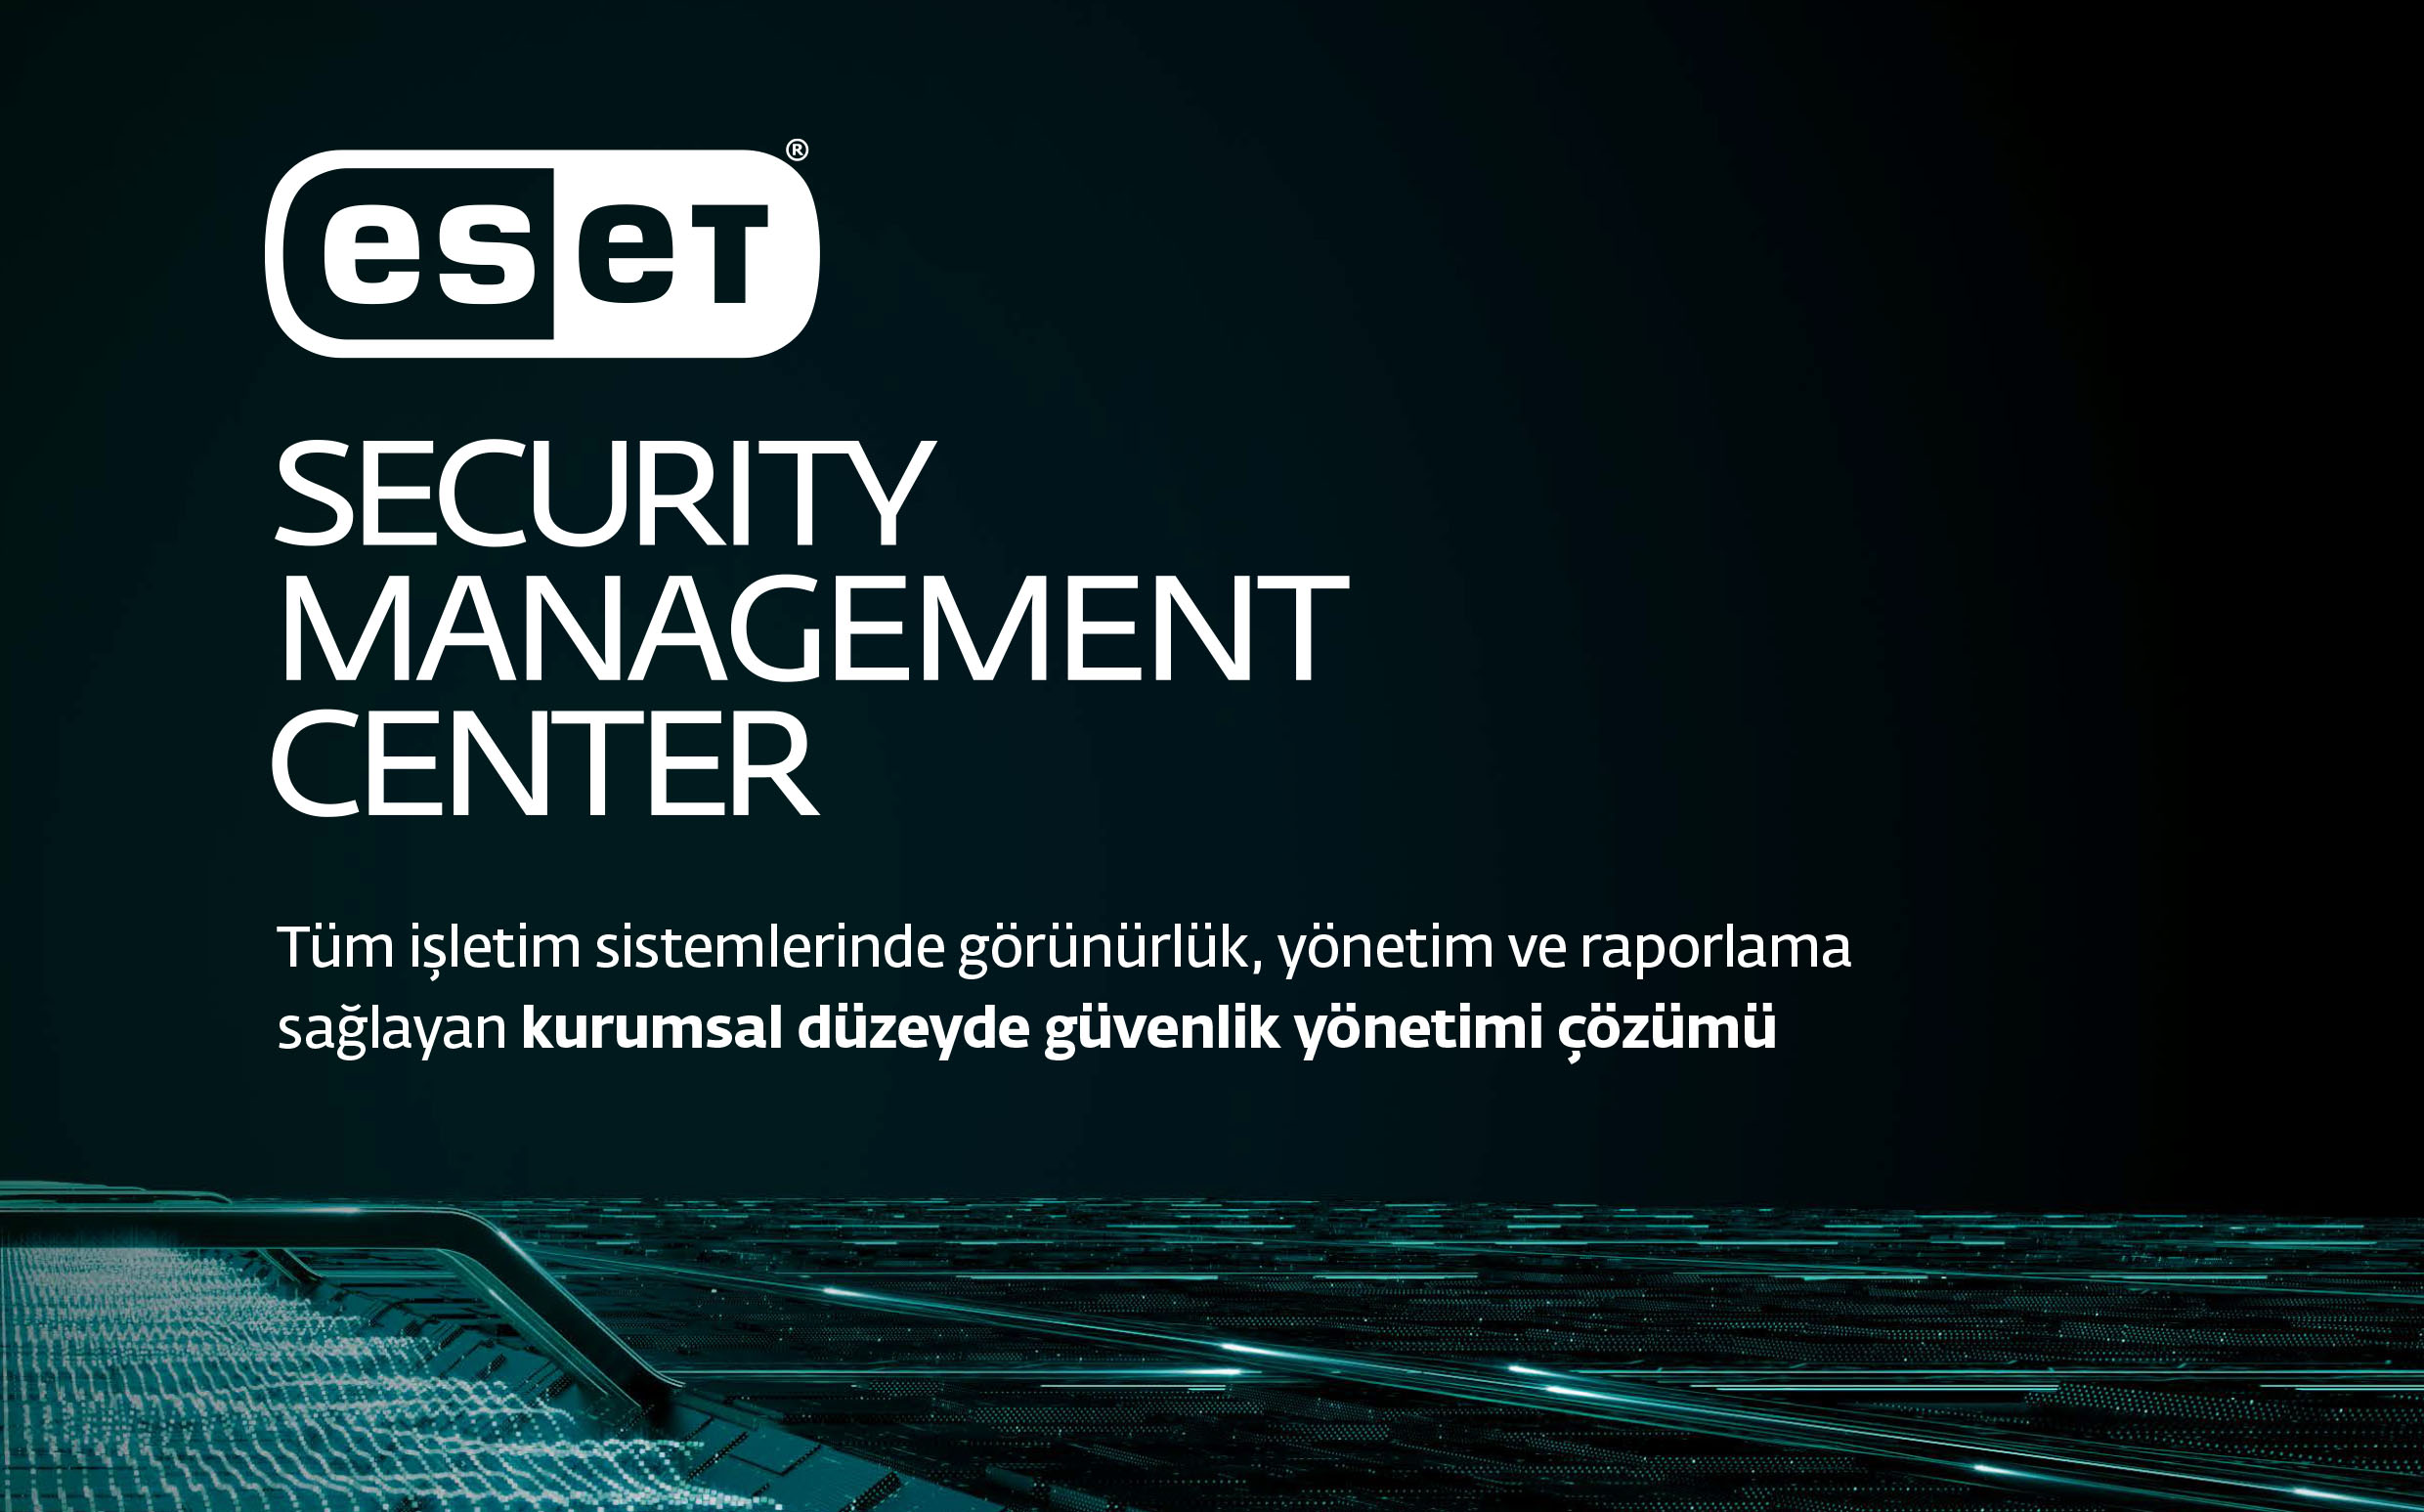 ESET Security Management Center